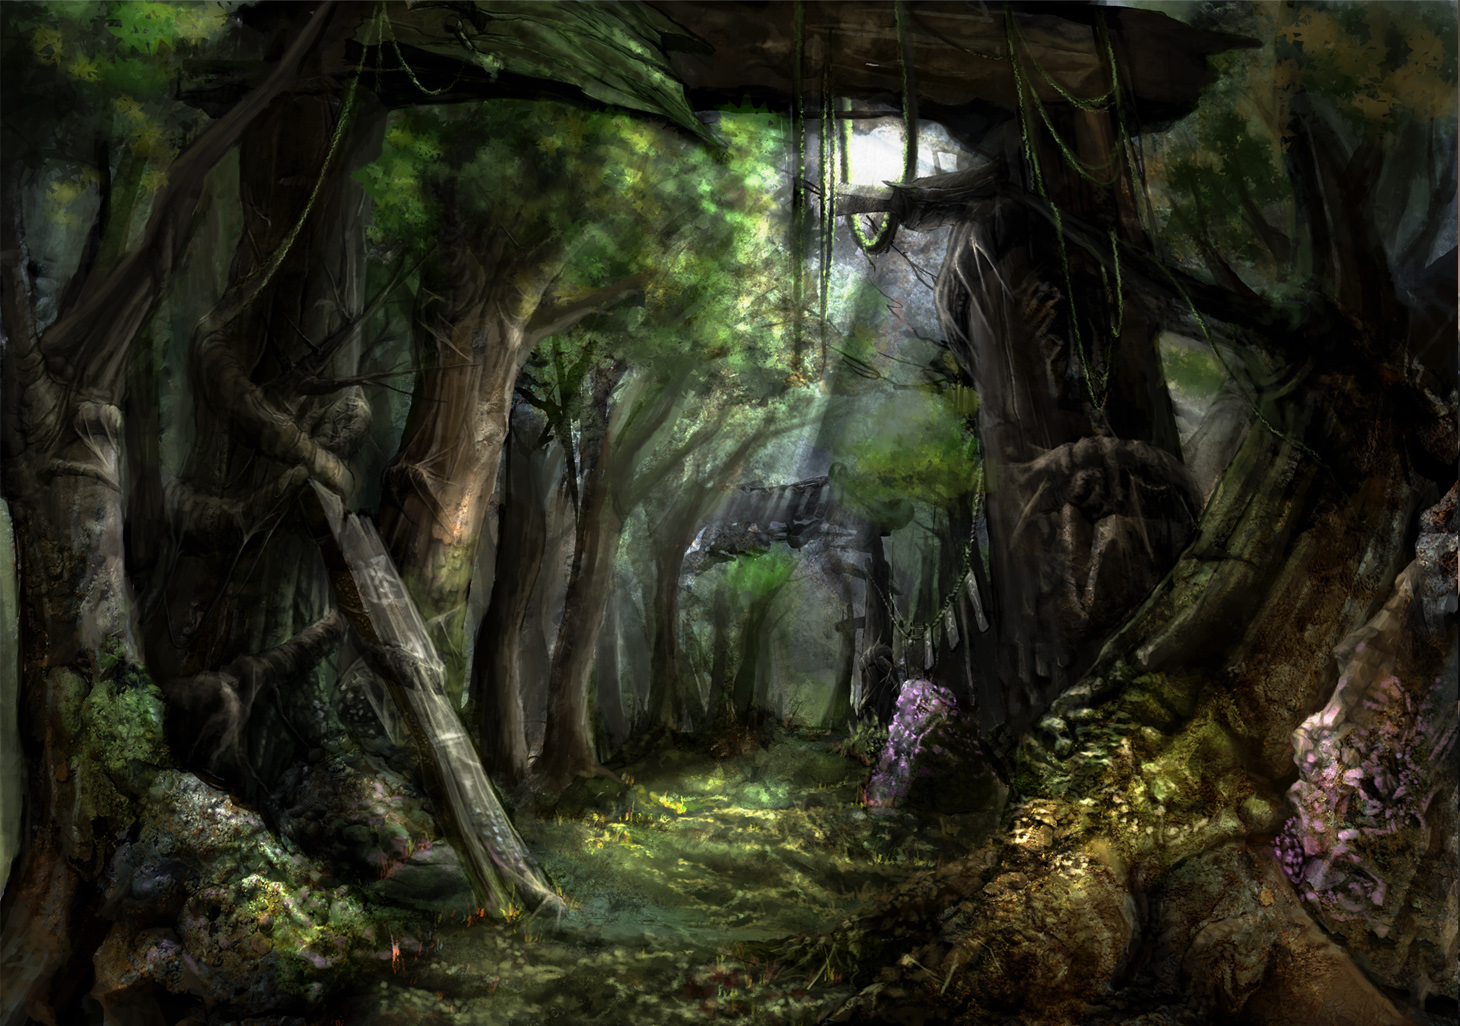 Fantasy-forest-wallpaper-hd-6.jpg